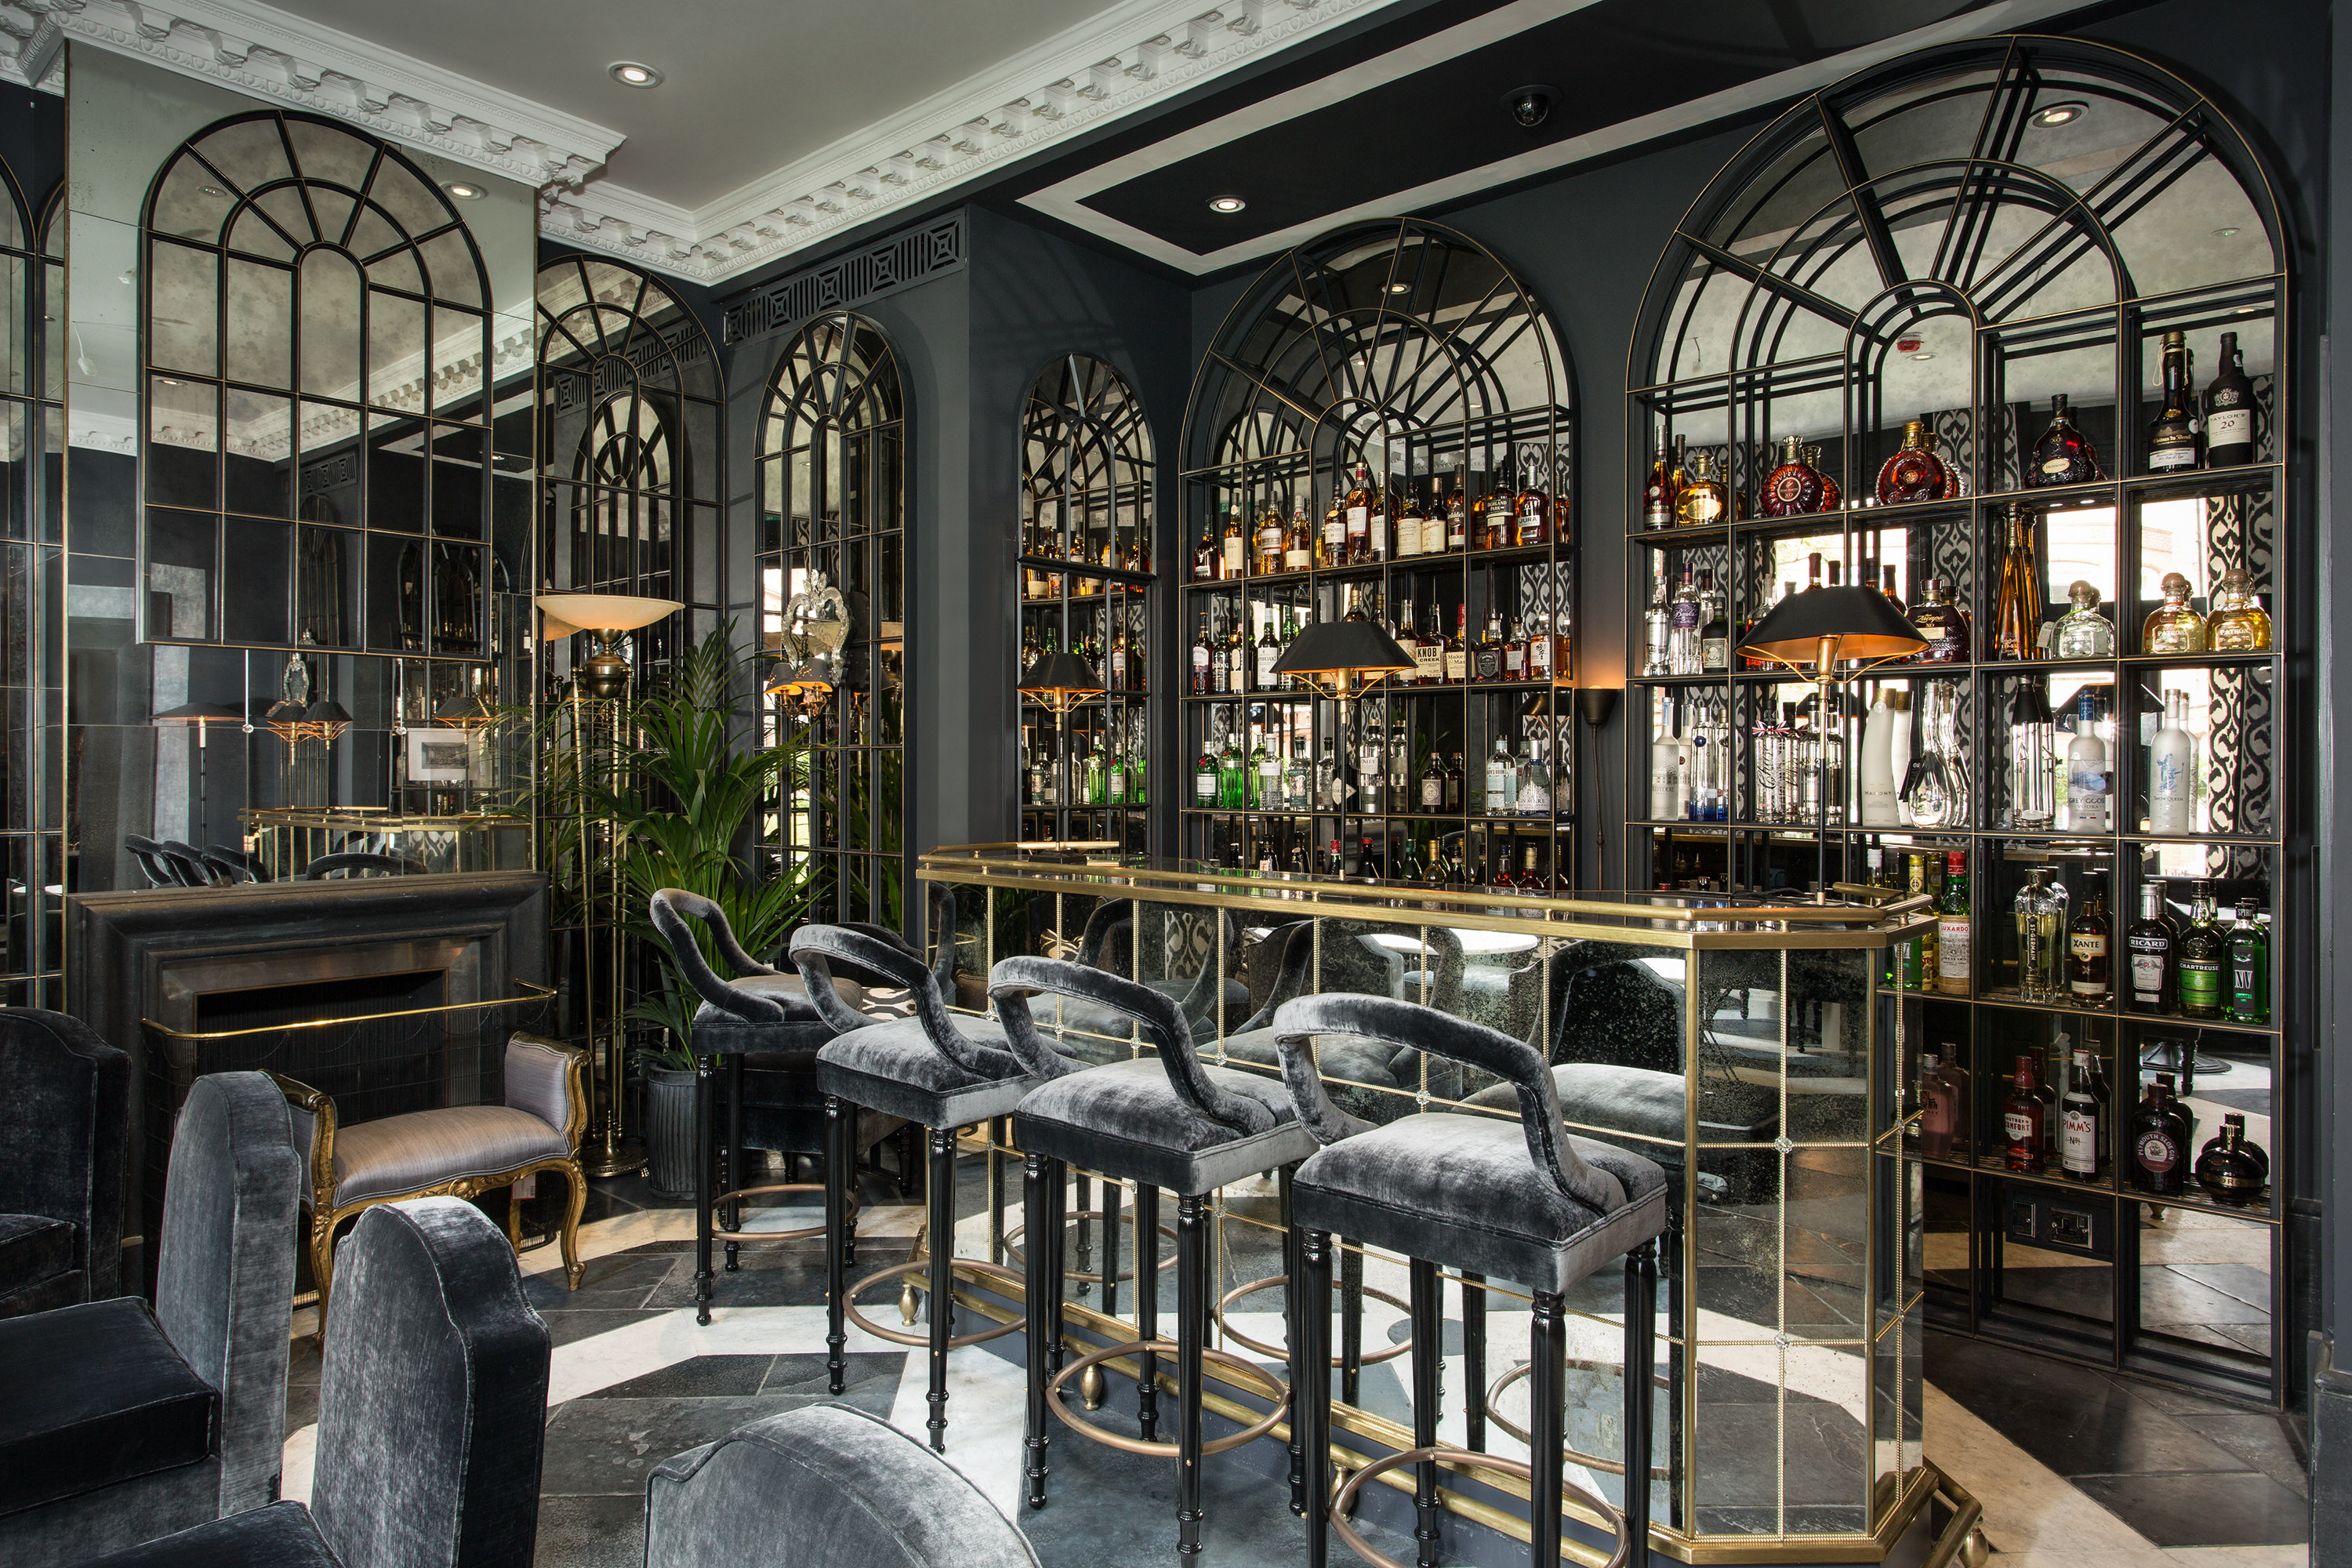 The Franklin Restaurant by Alfredo Russo, Knightsbridge 1